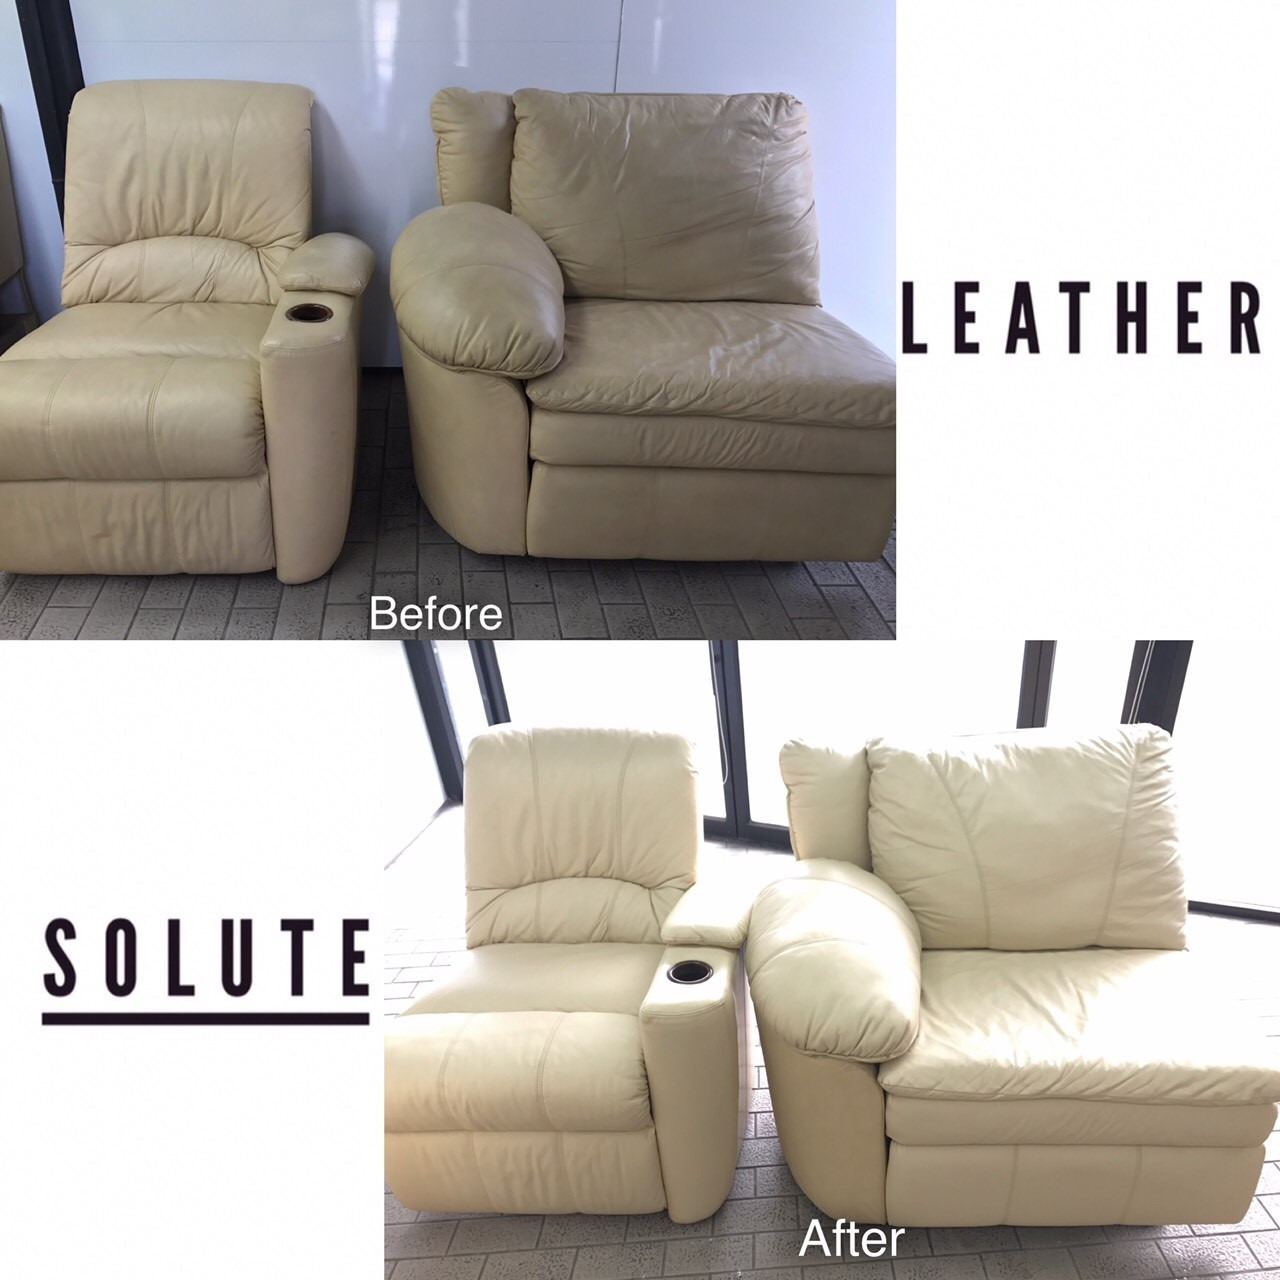 //www.leathersolute.co.th/wp-content/uploads/2018/12/Cleaning-furniture_๑๘๑๒๓๐_0009.jpg